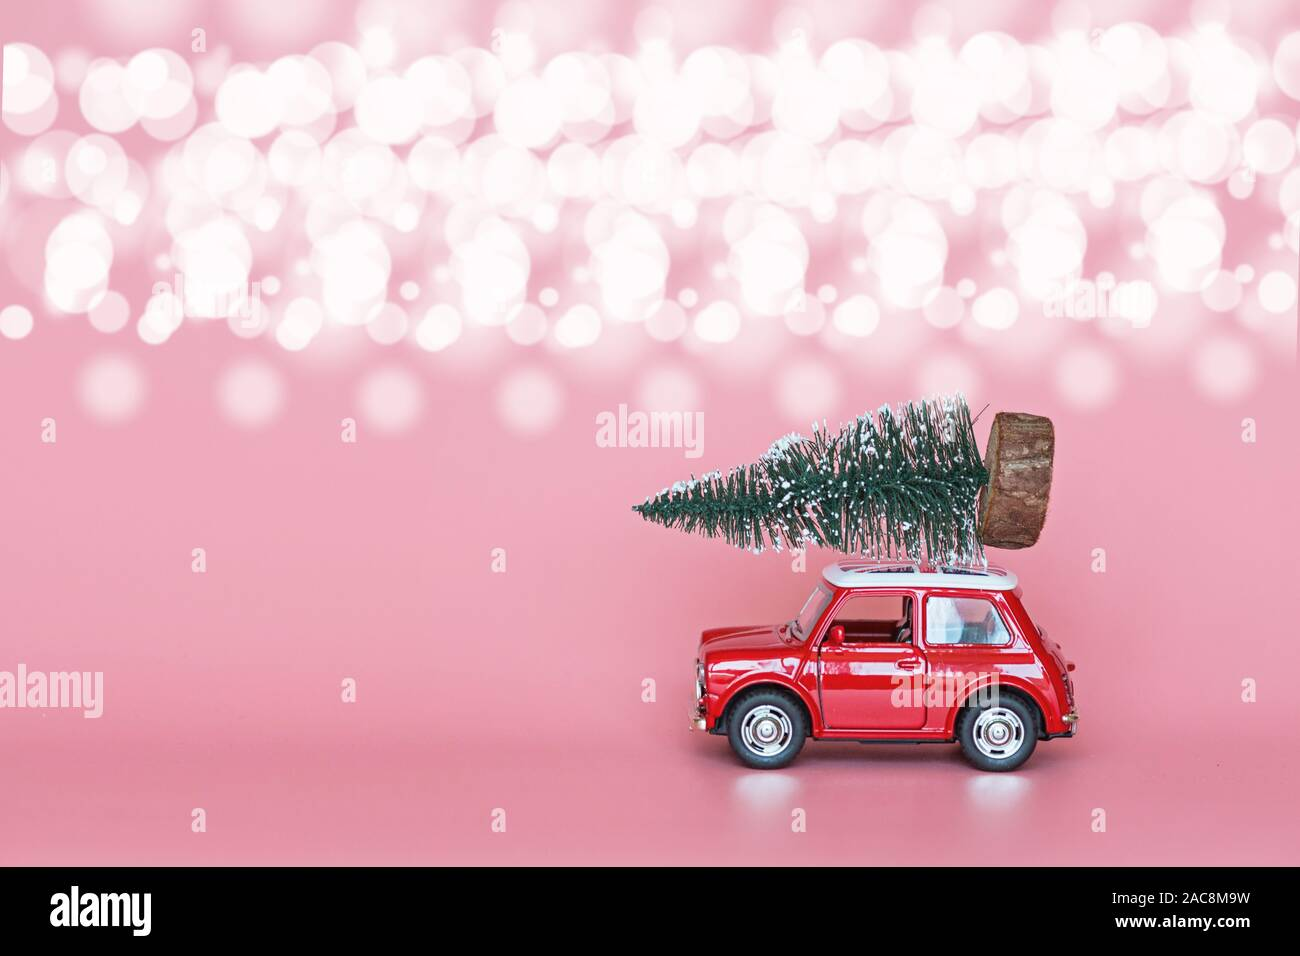 Red toy car with a christmas tree on the roof on pink paper background. Winter delivery, xmas, happy new year 2020 celebration concept. greeting card Stock Photo